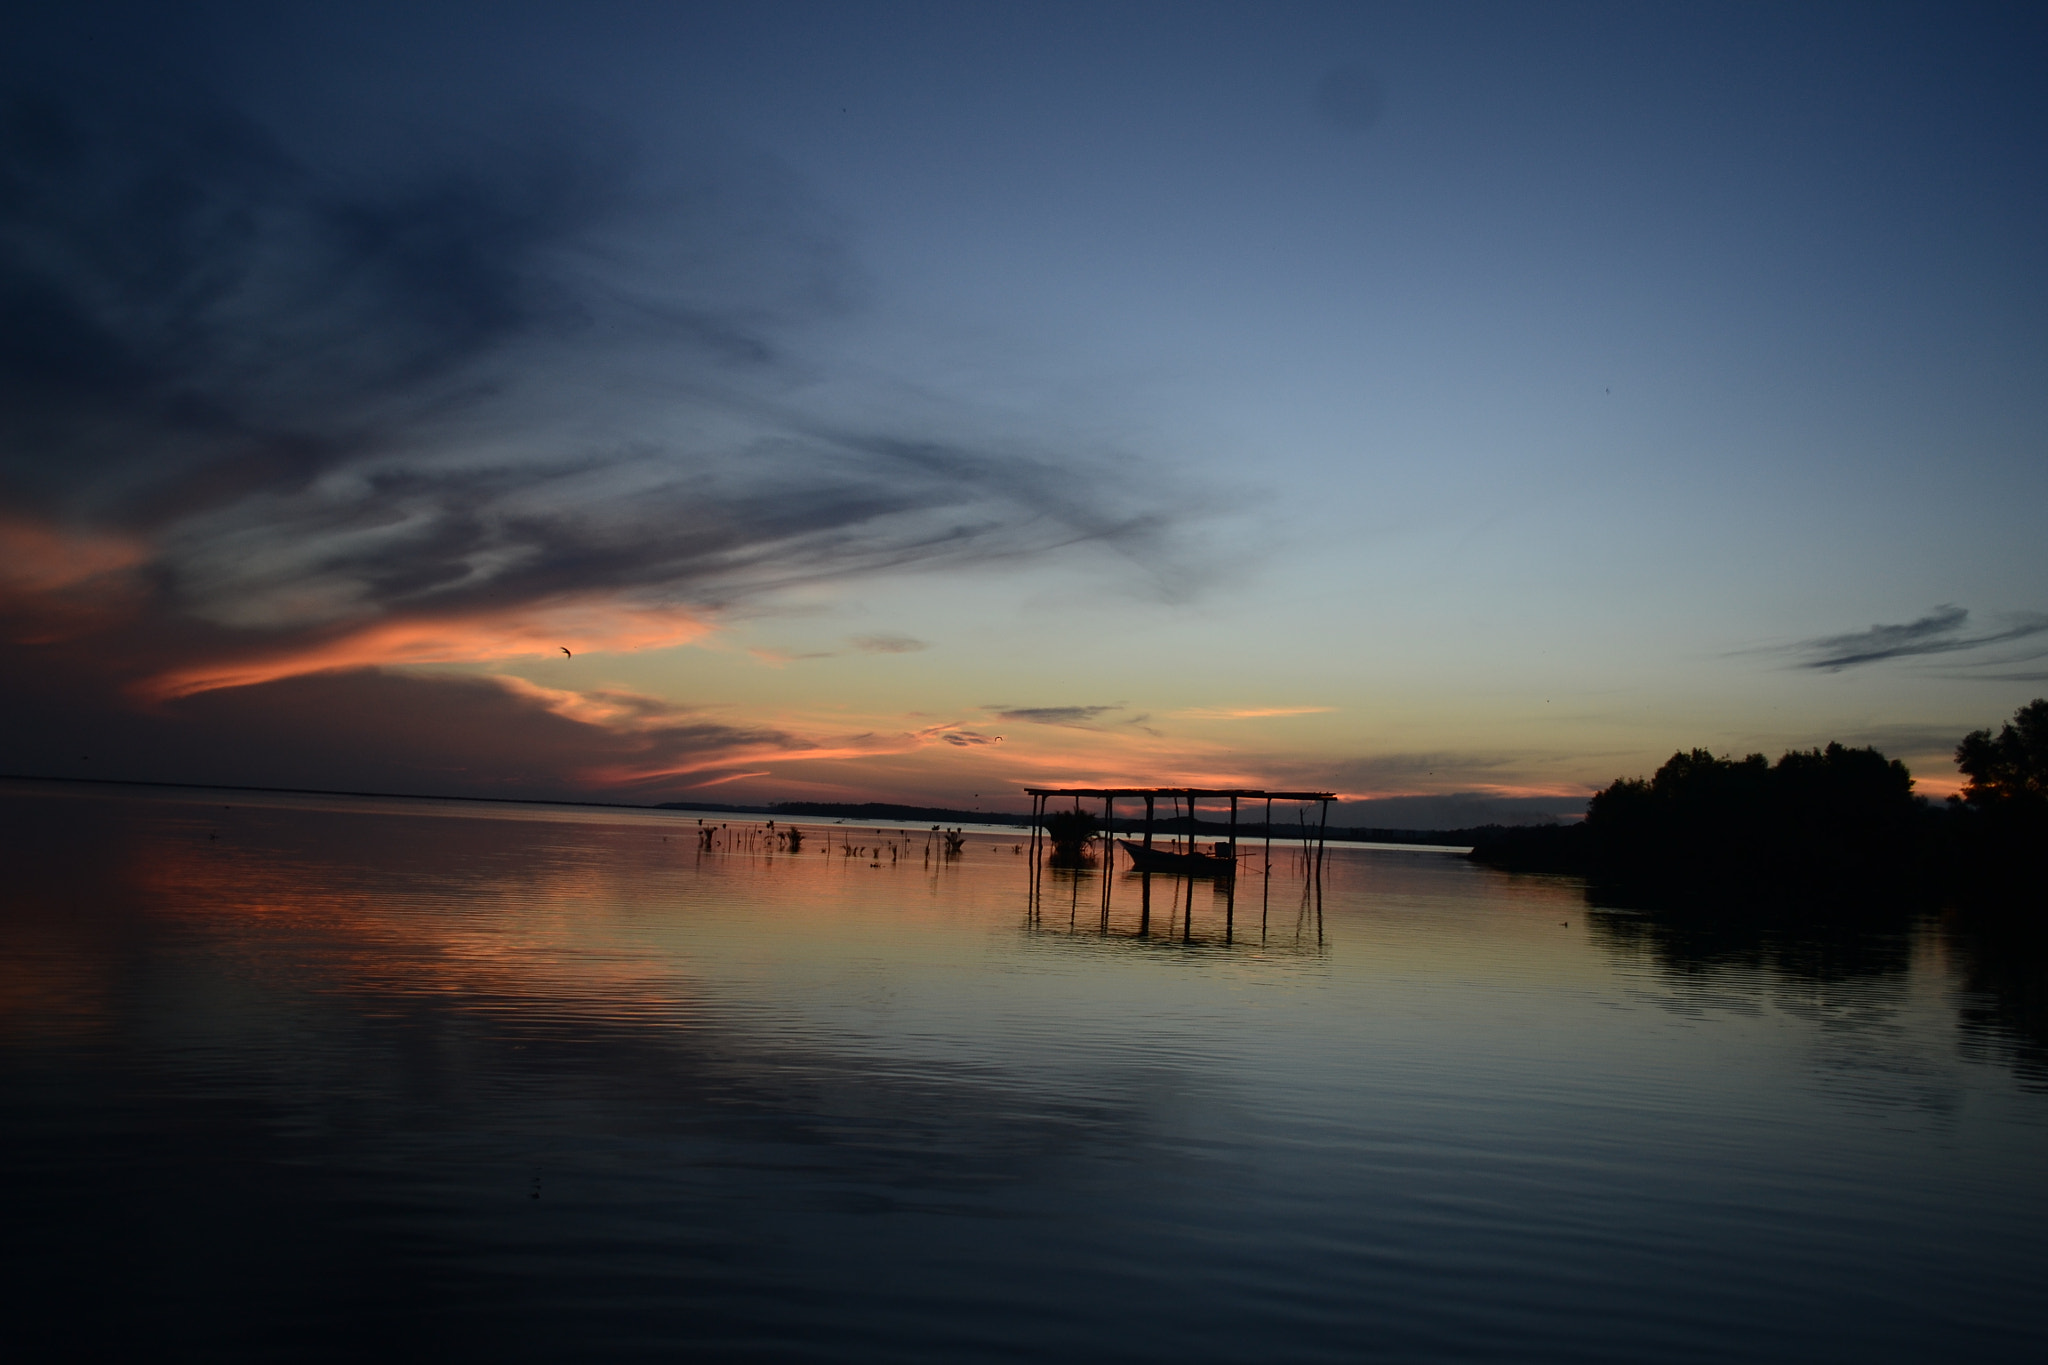 Photograph Pantai Jubakar by Firdauspc Photografer on 500px